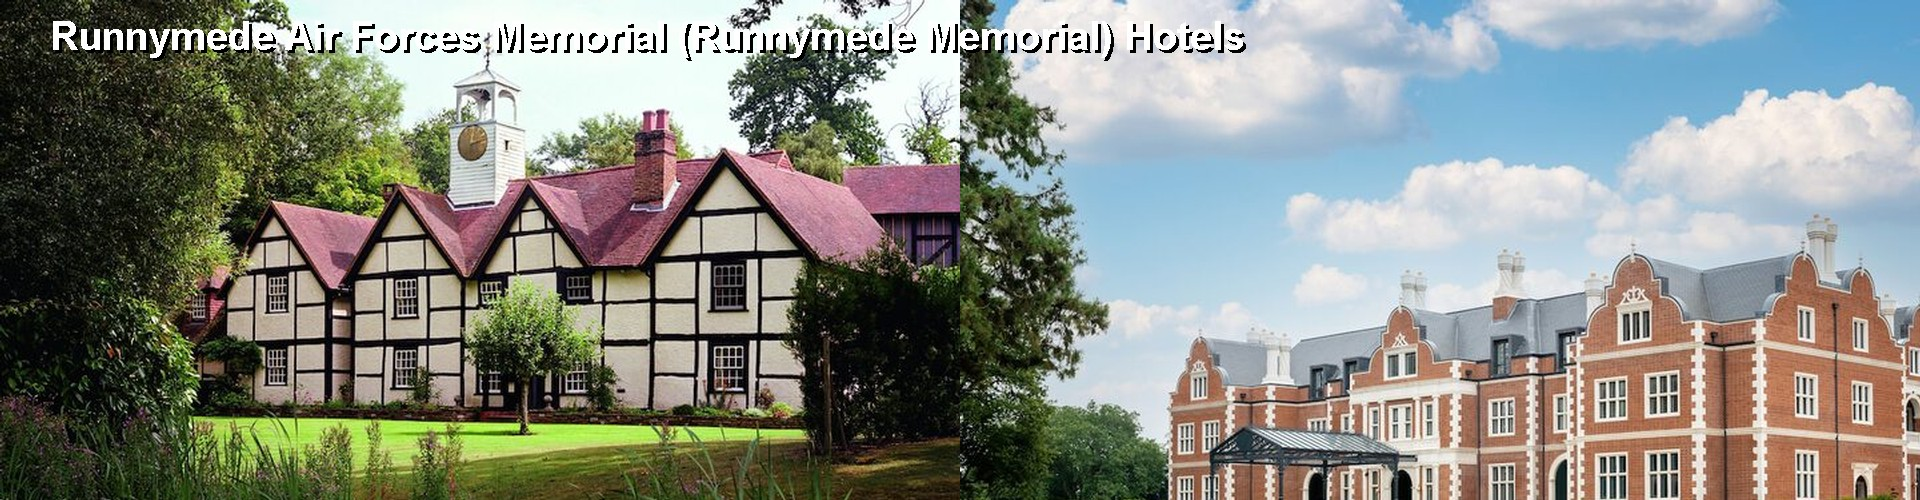 5 Best Hotels near Runnymede Air Forces Memorial (Runnymede Memorial)